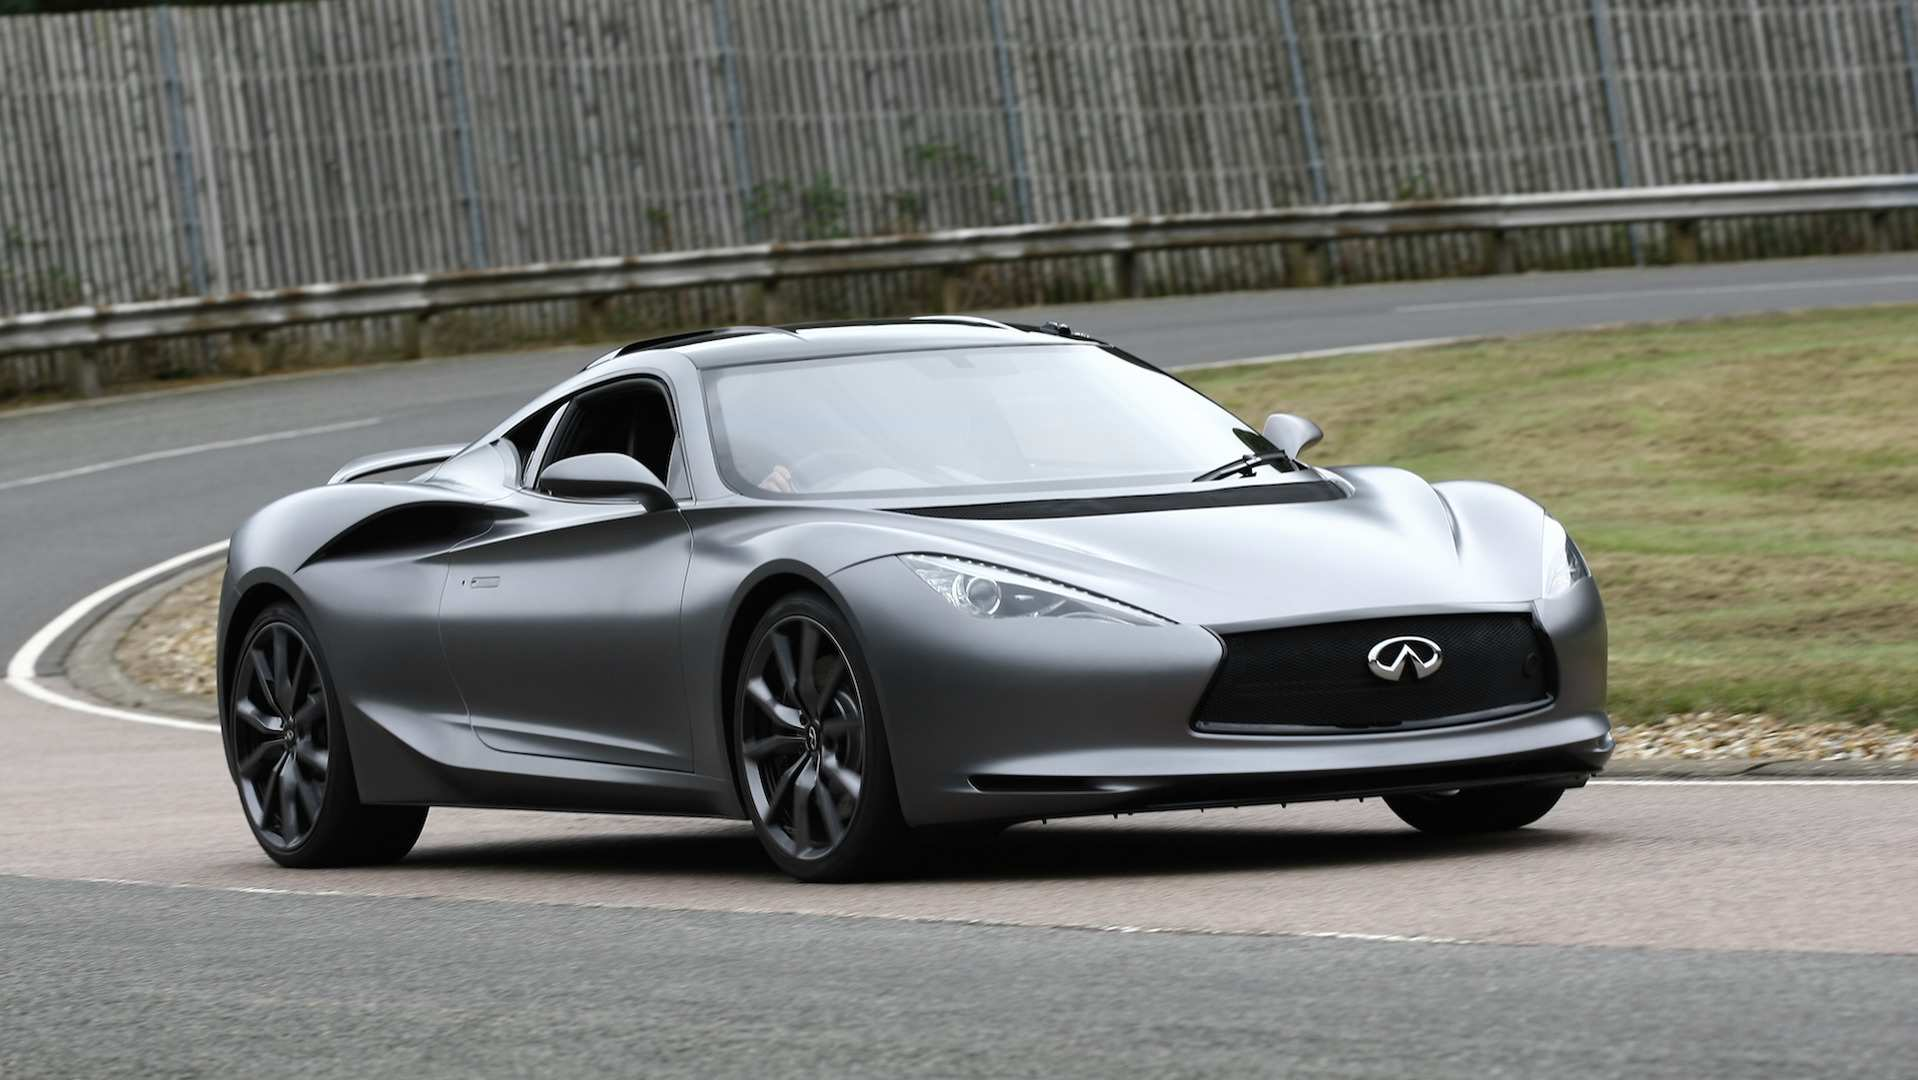 75 The Best Infiniti Cars For 2020 Price